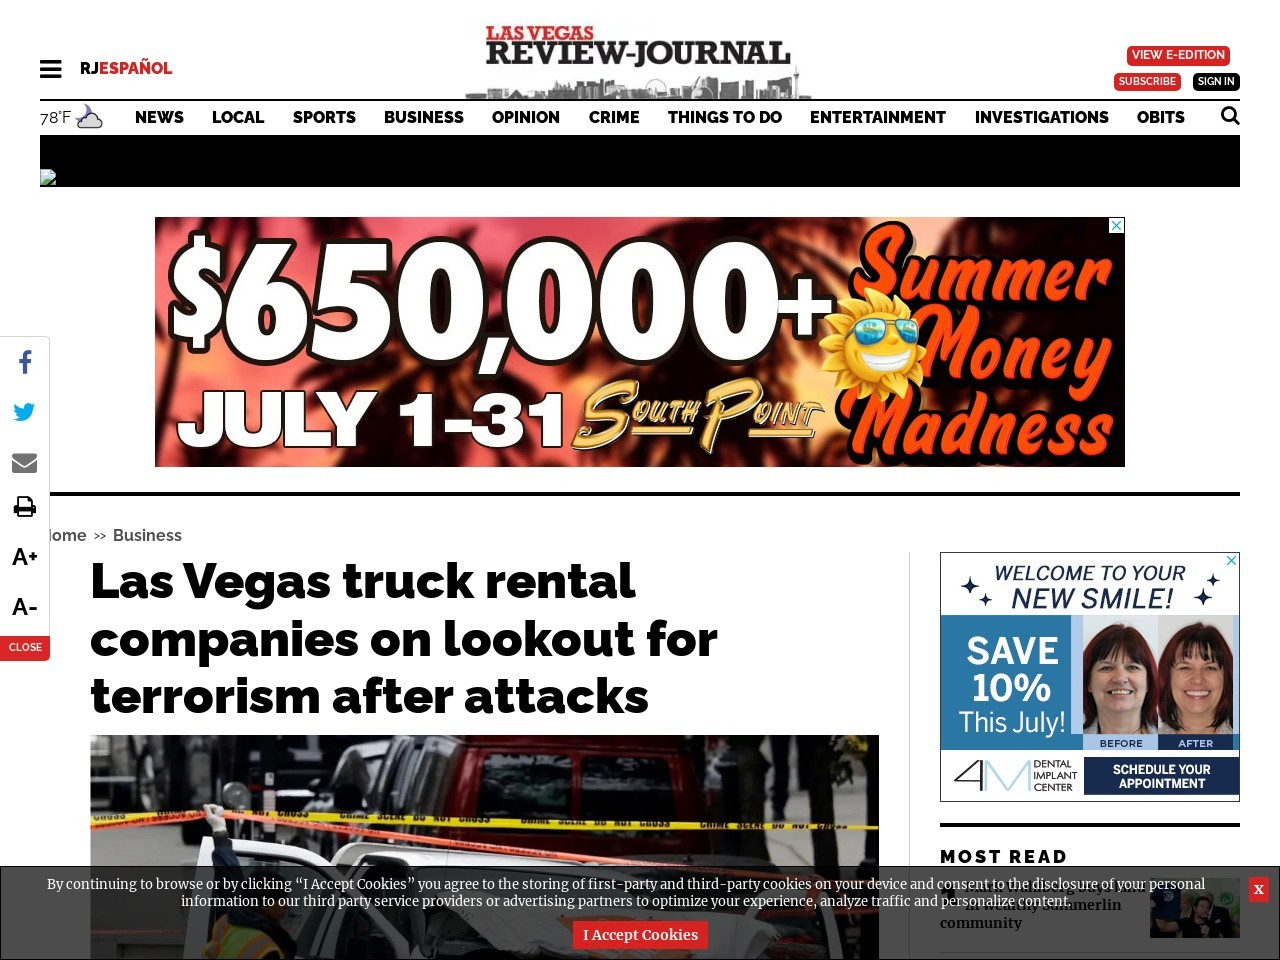 Las Vegas truck rental companies on lookout for terrorism after attacks